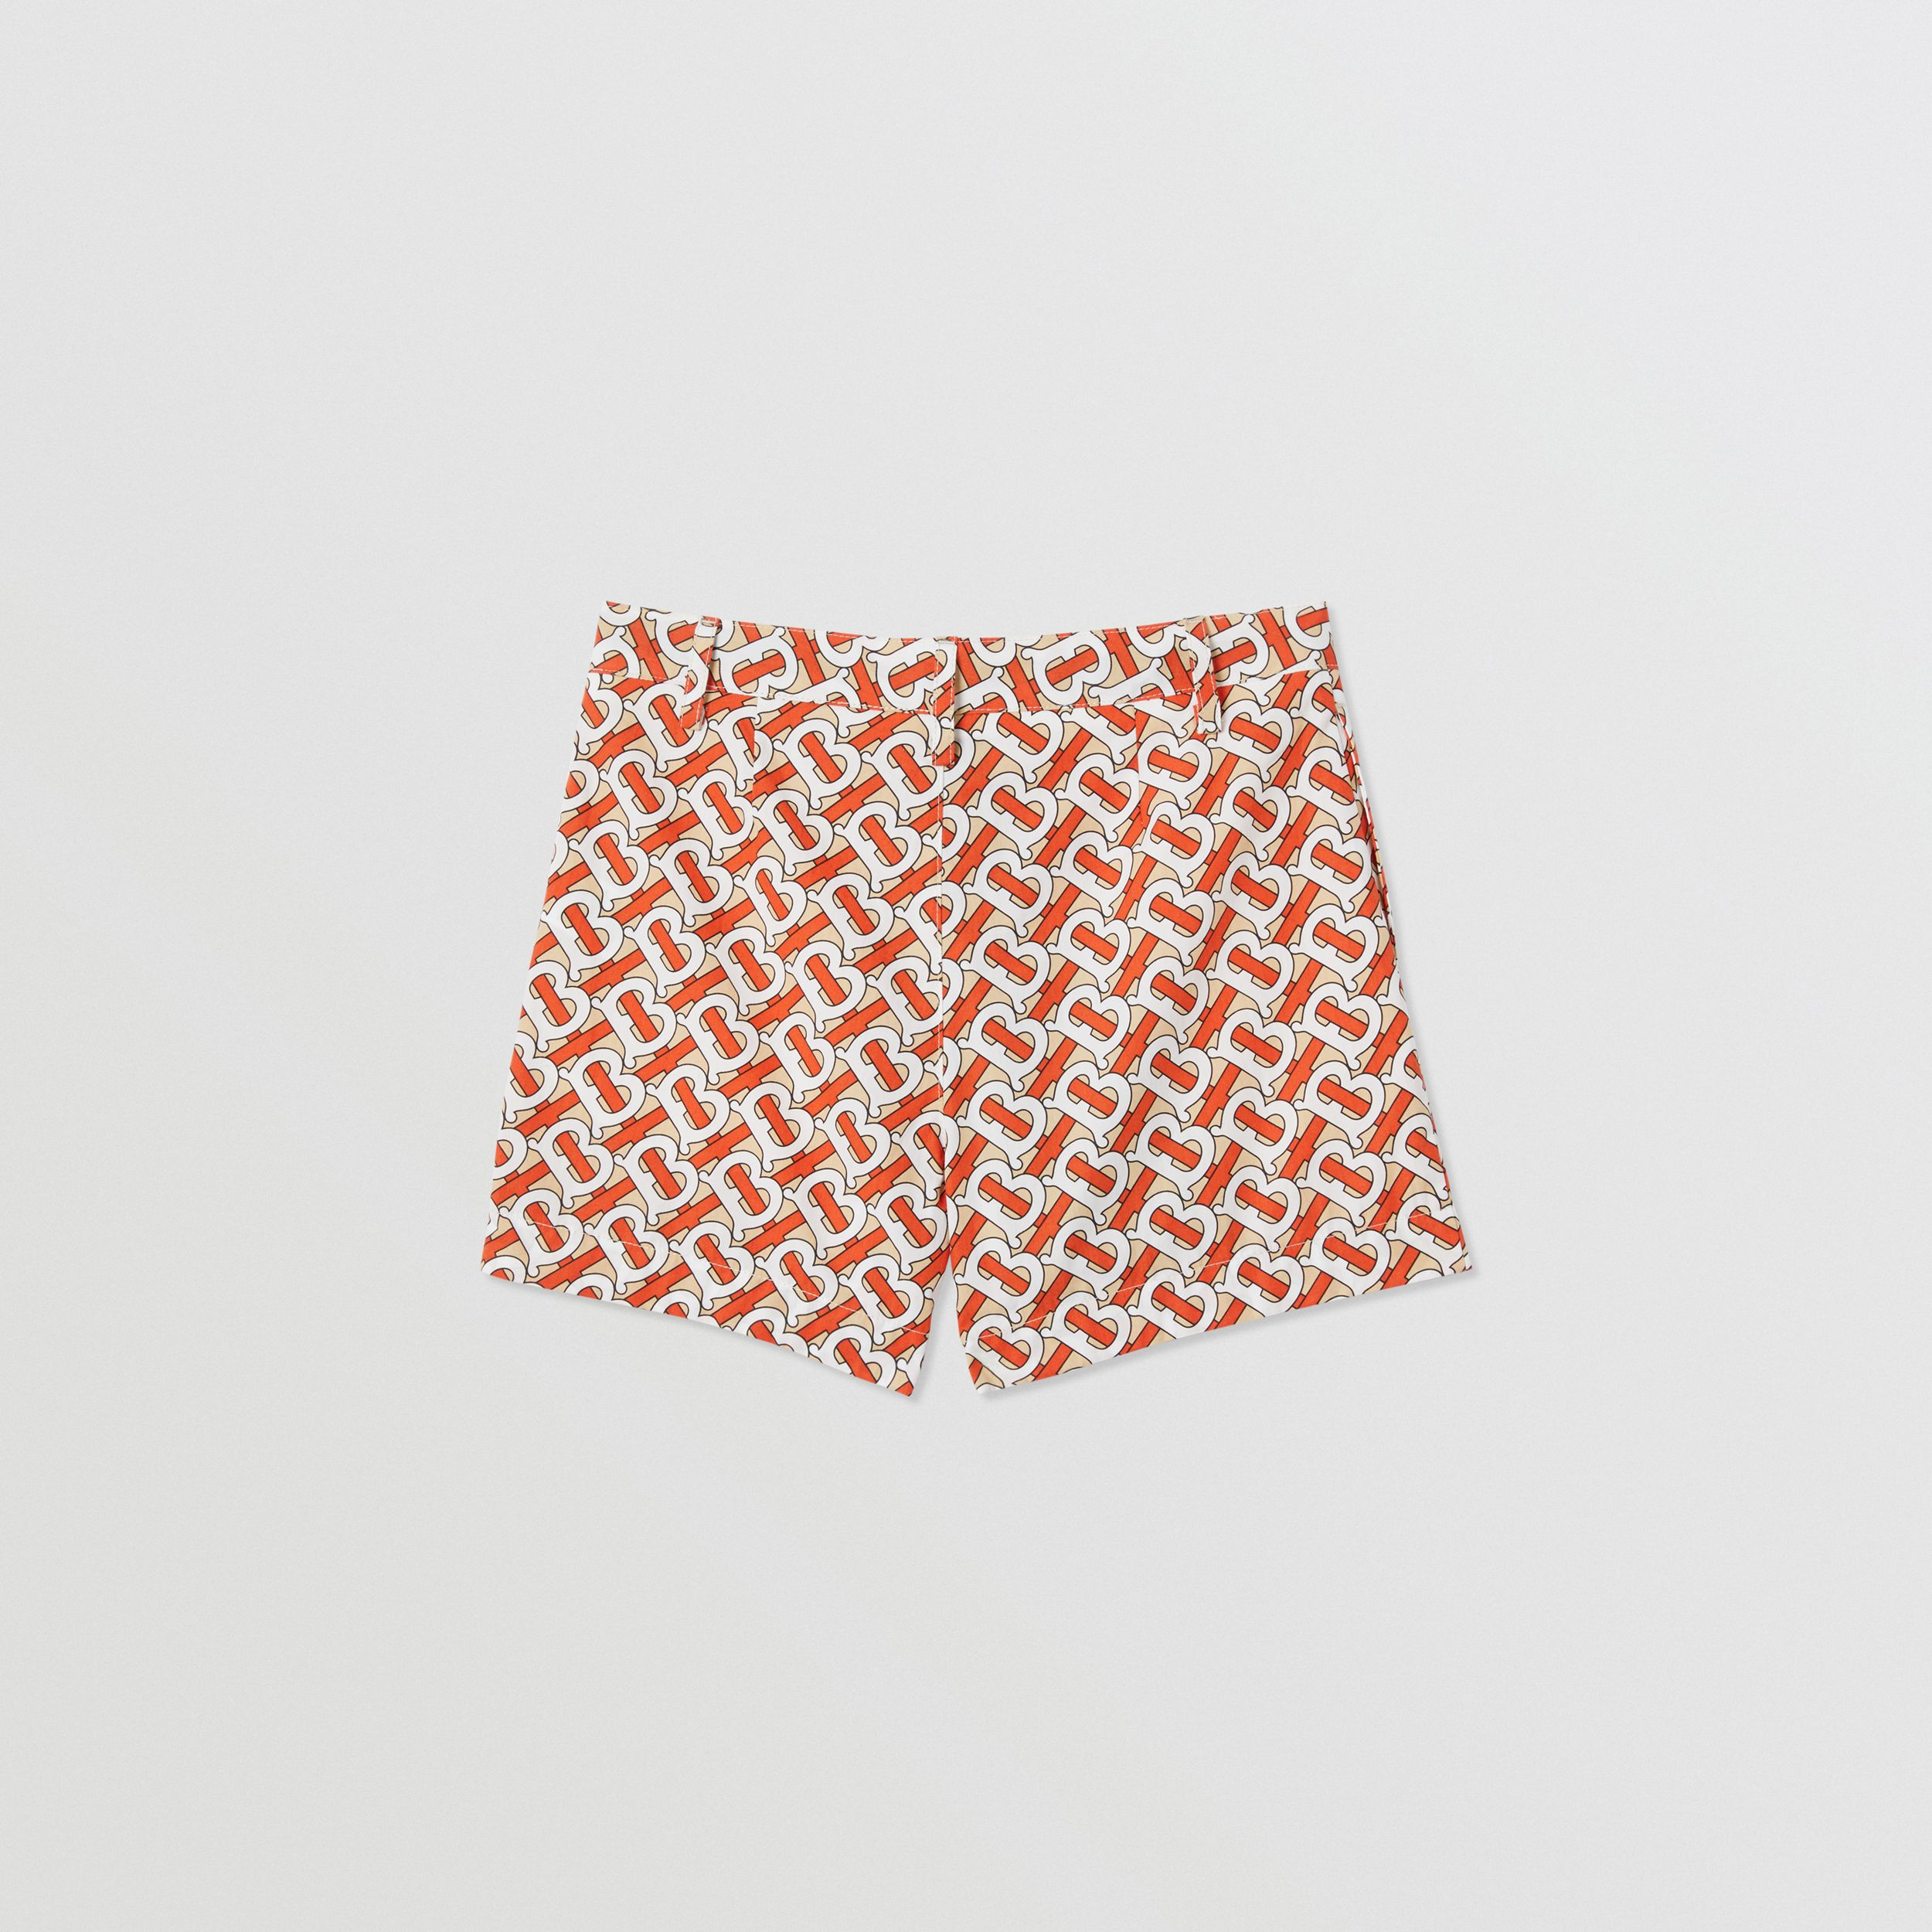 Monogram Print Cotton Poplin Shorts in Vermilion Red | Burberry - 4